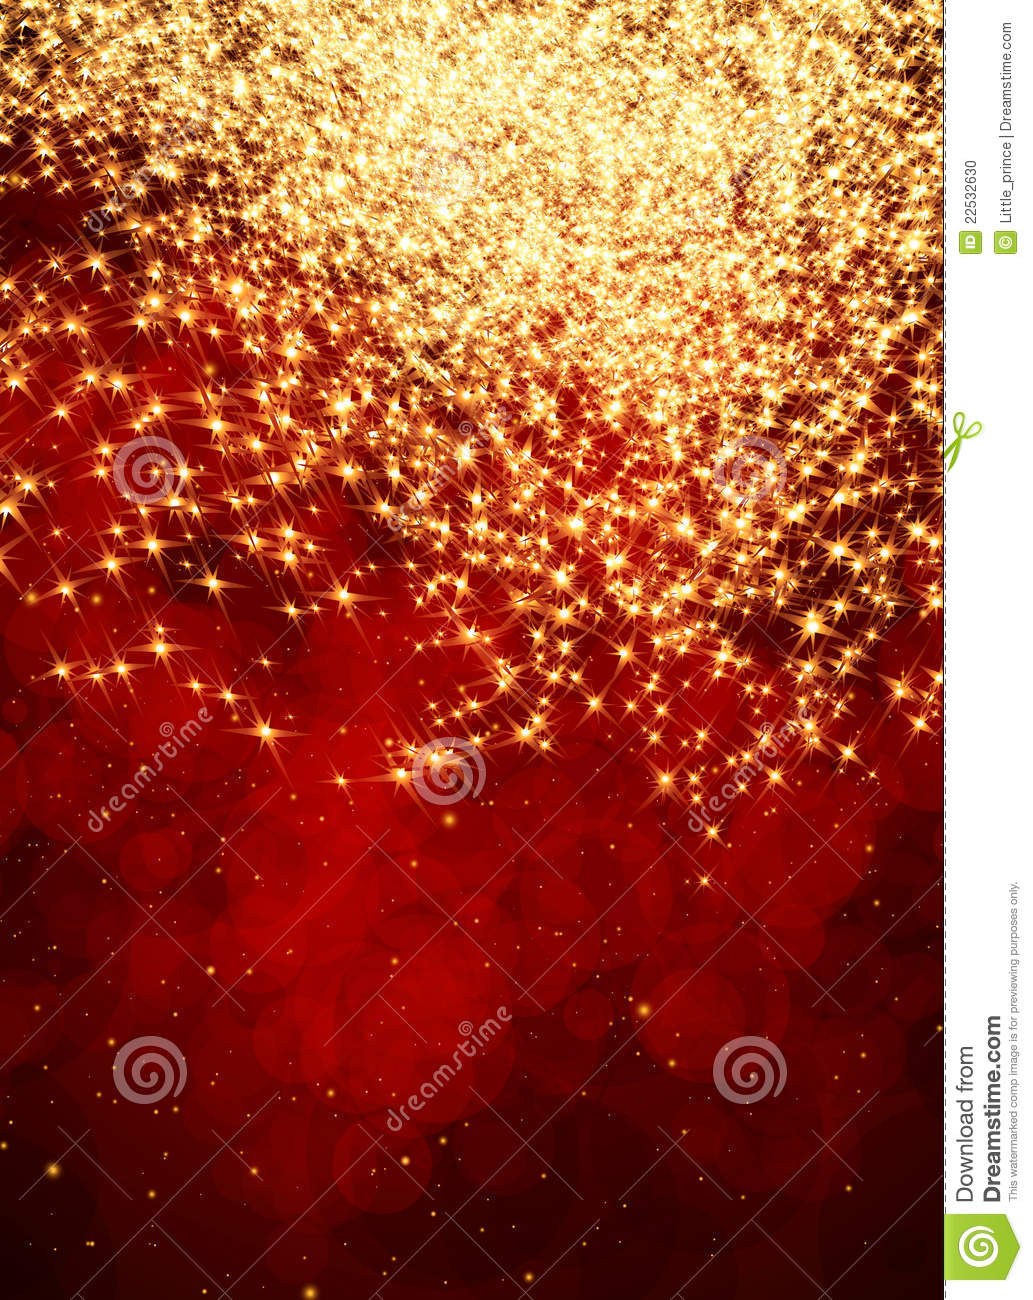 red golden background - photo #28